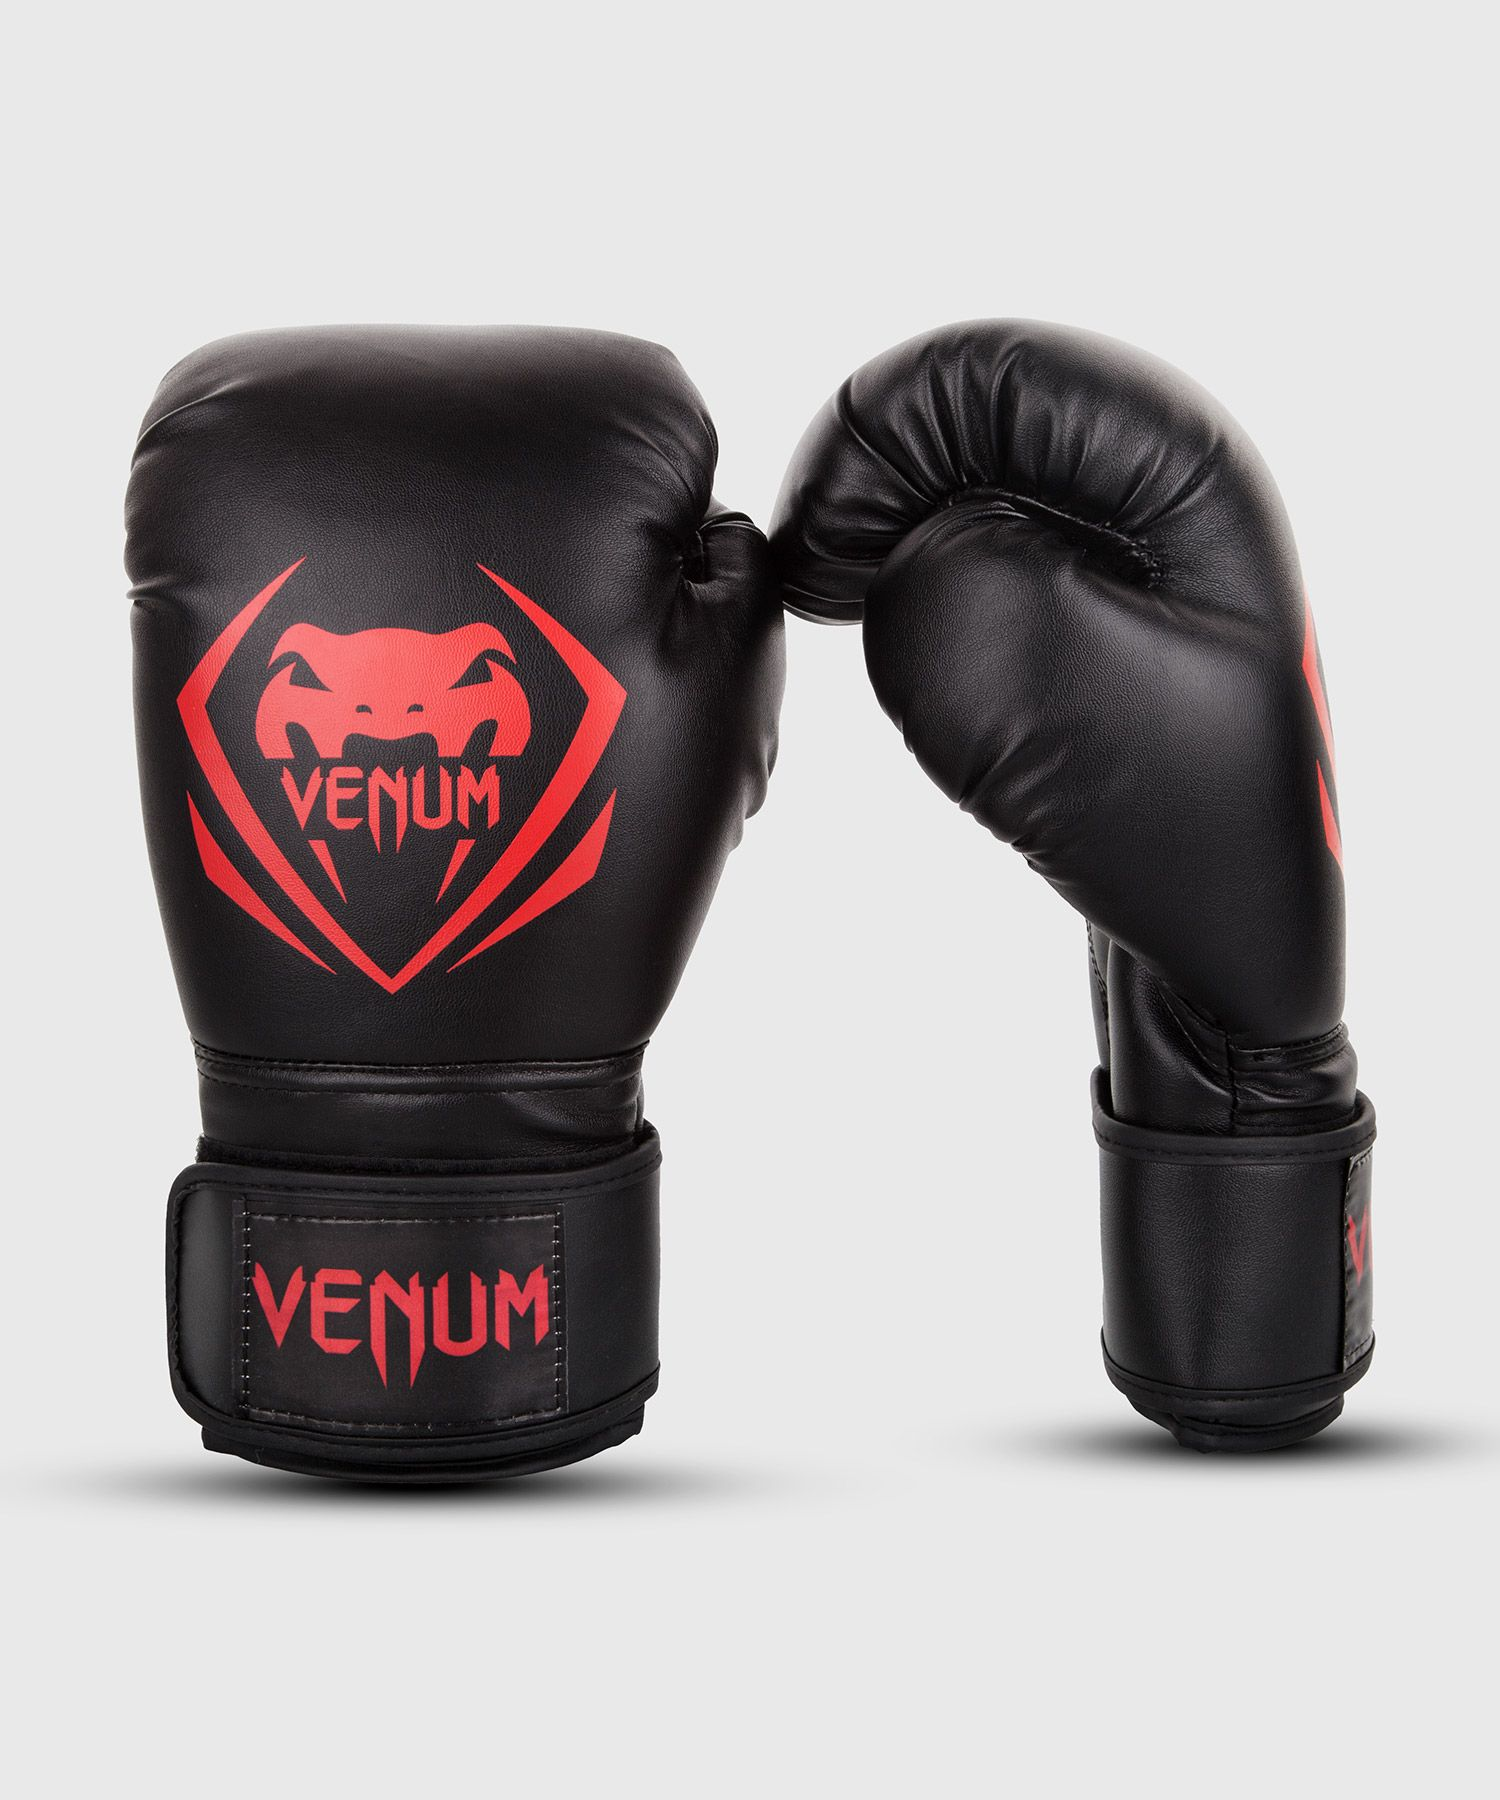 Venum Contender Boxing Gloves - Black/Red